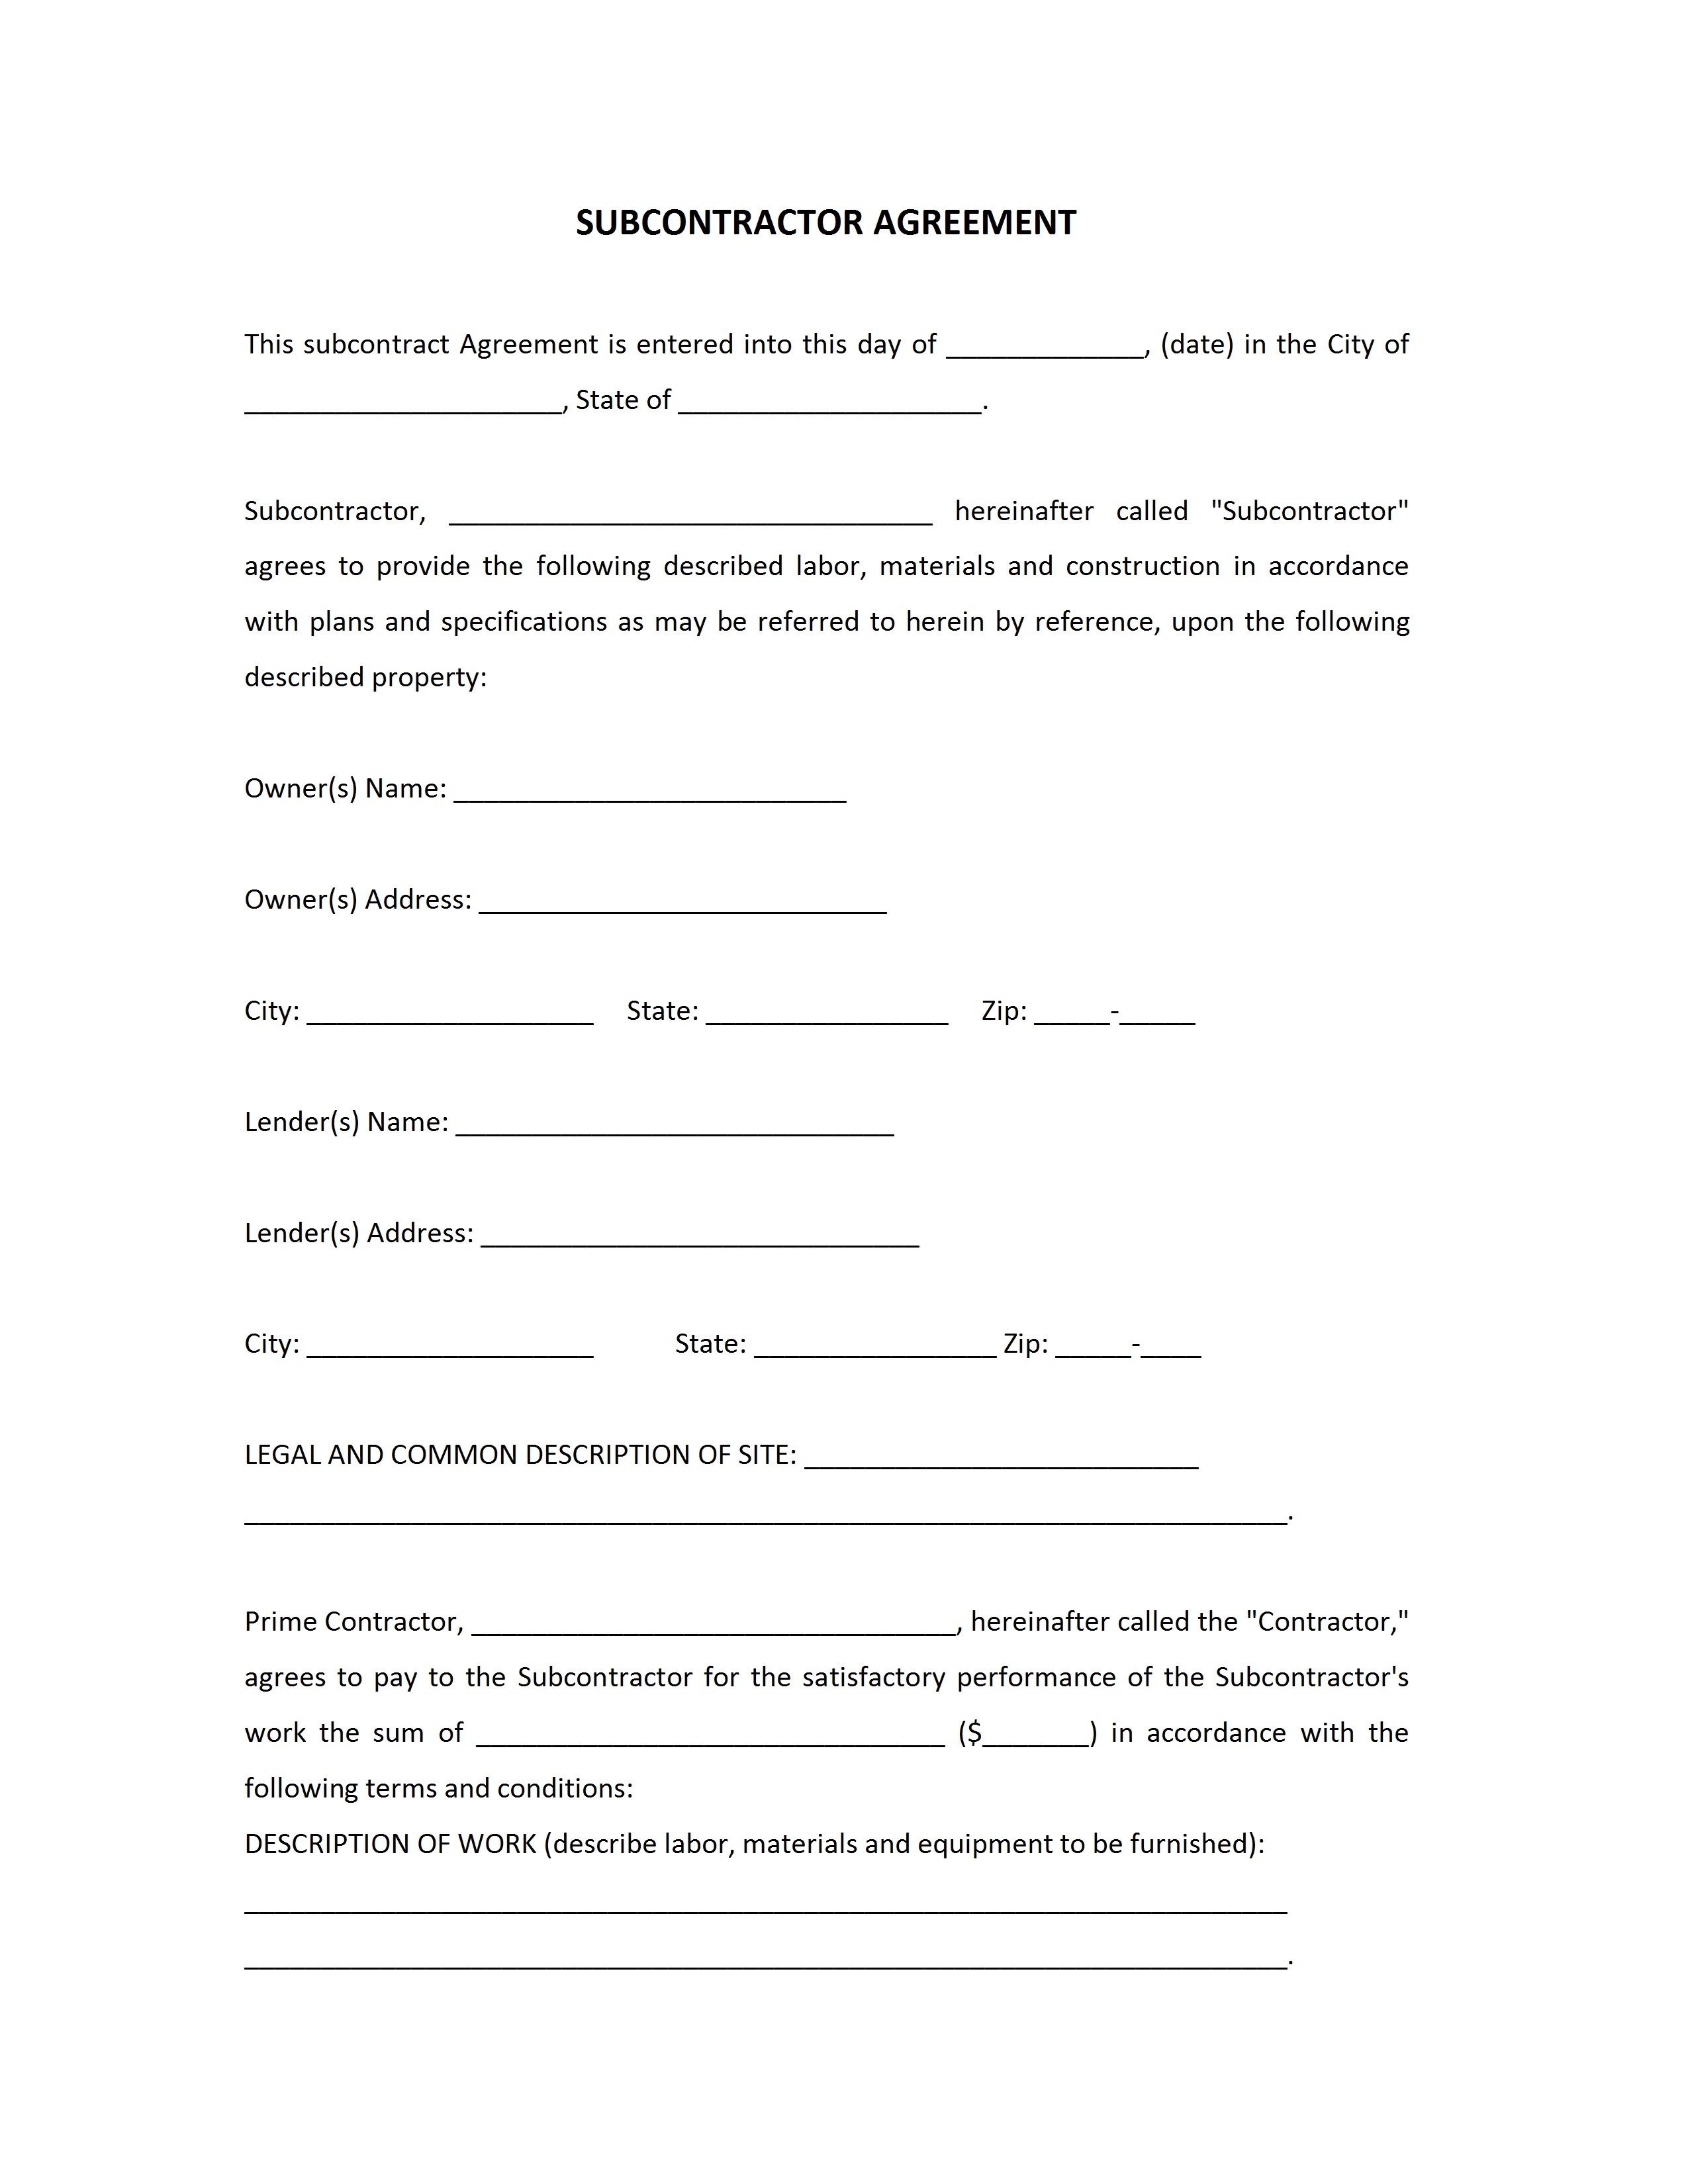 Subcontractor Template Subcontractor Assessment Form Buy Sample Regarding Collateral Warranty Agreement Template